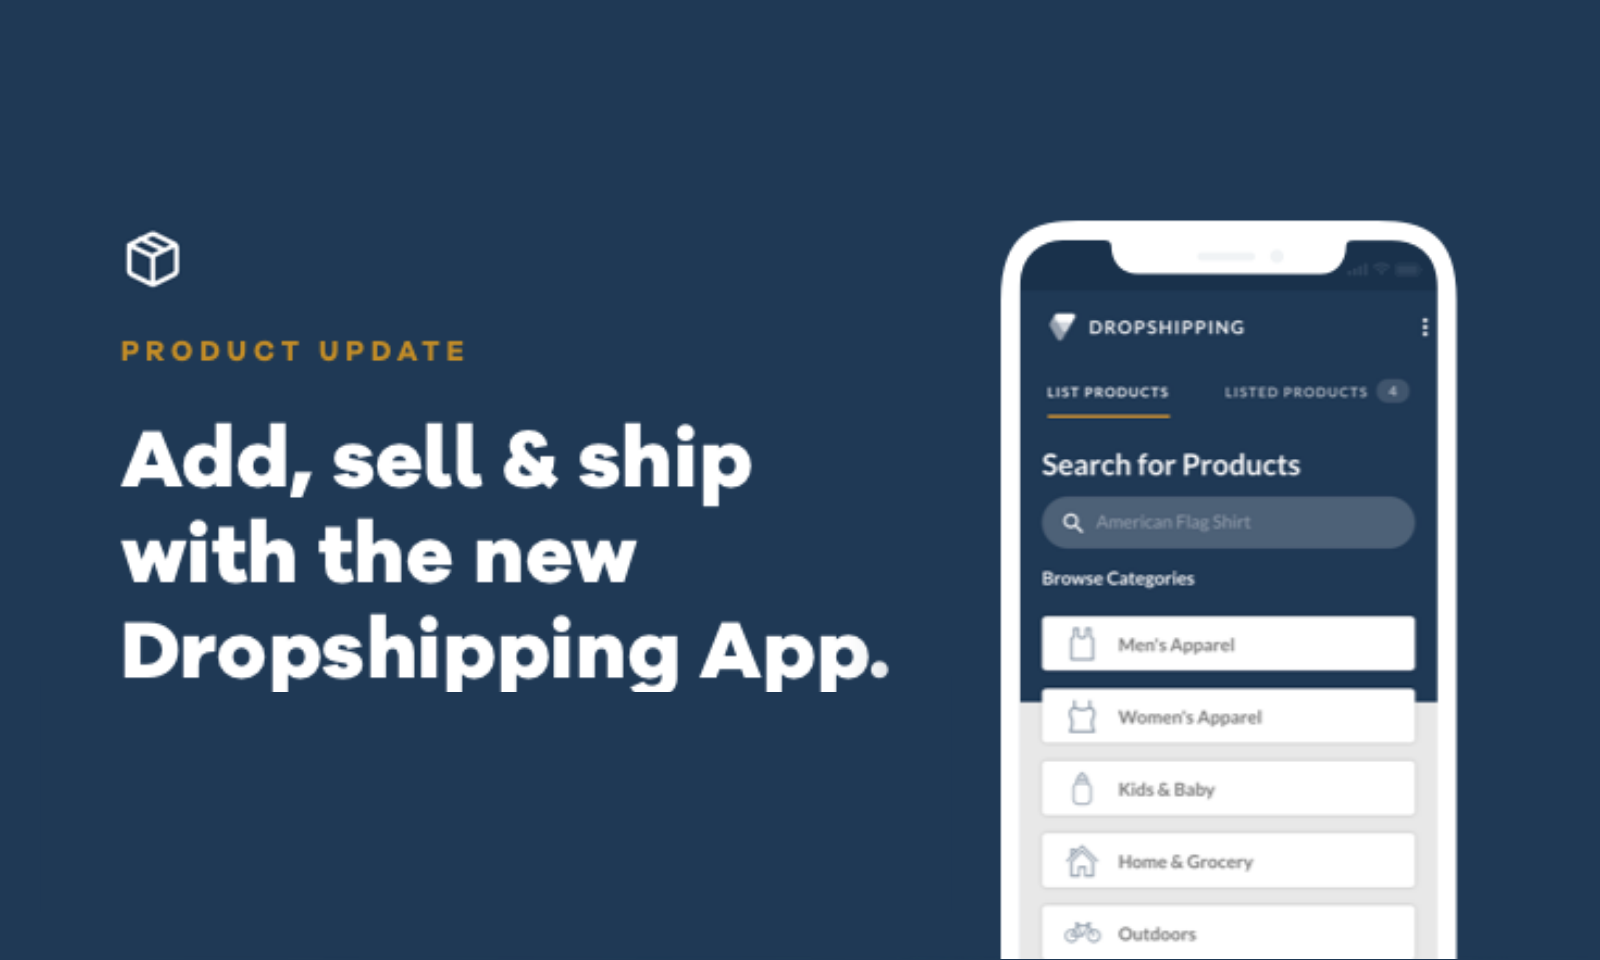 Say Hello to More Than 150,000 NEW Dropshipping Items